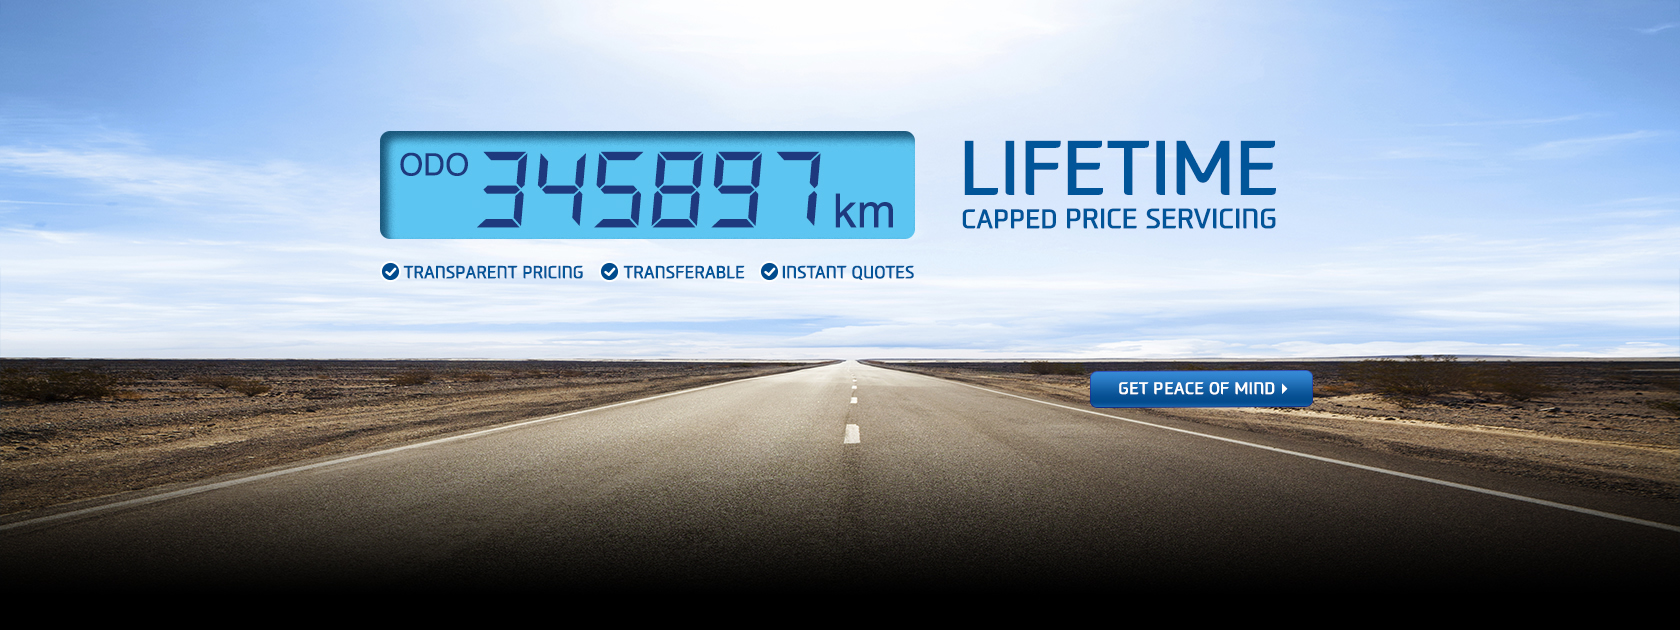 Lifetime Capped Price Servicing